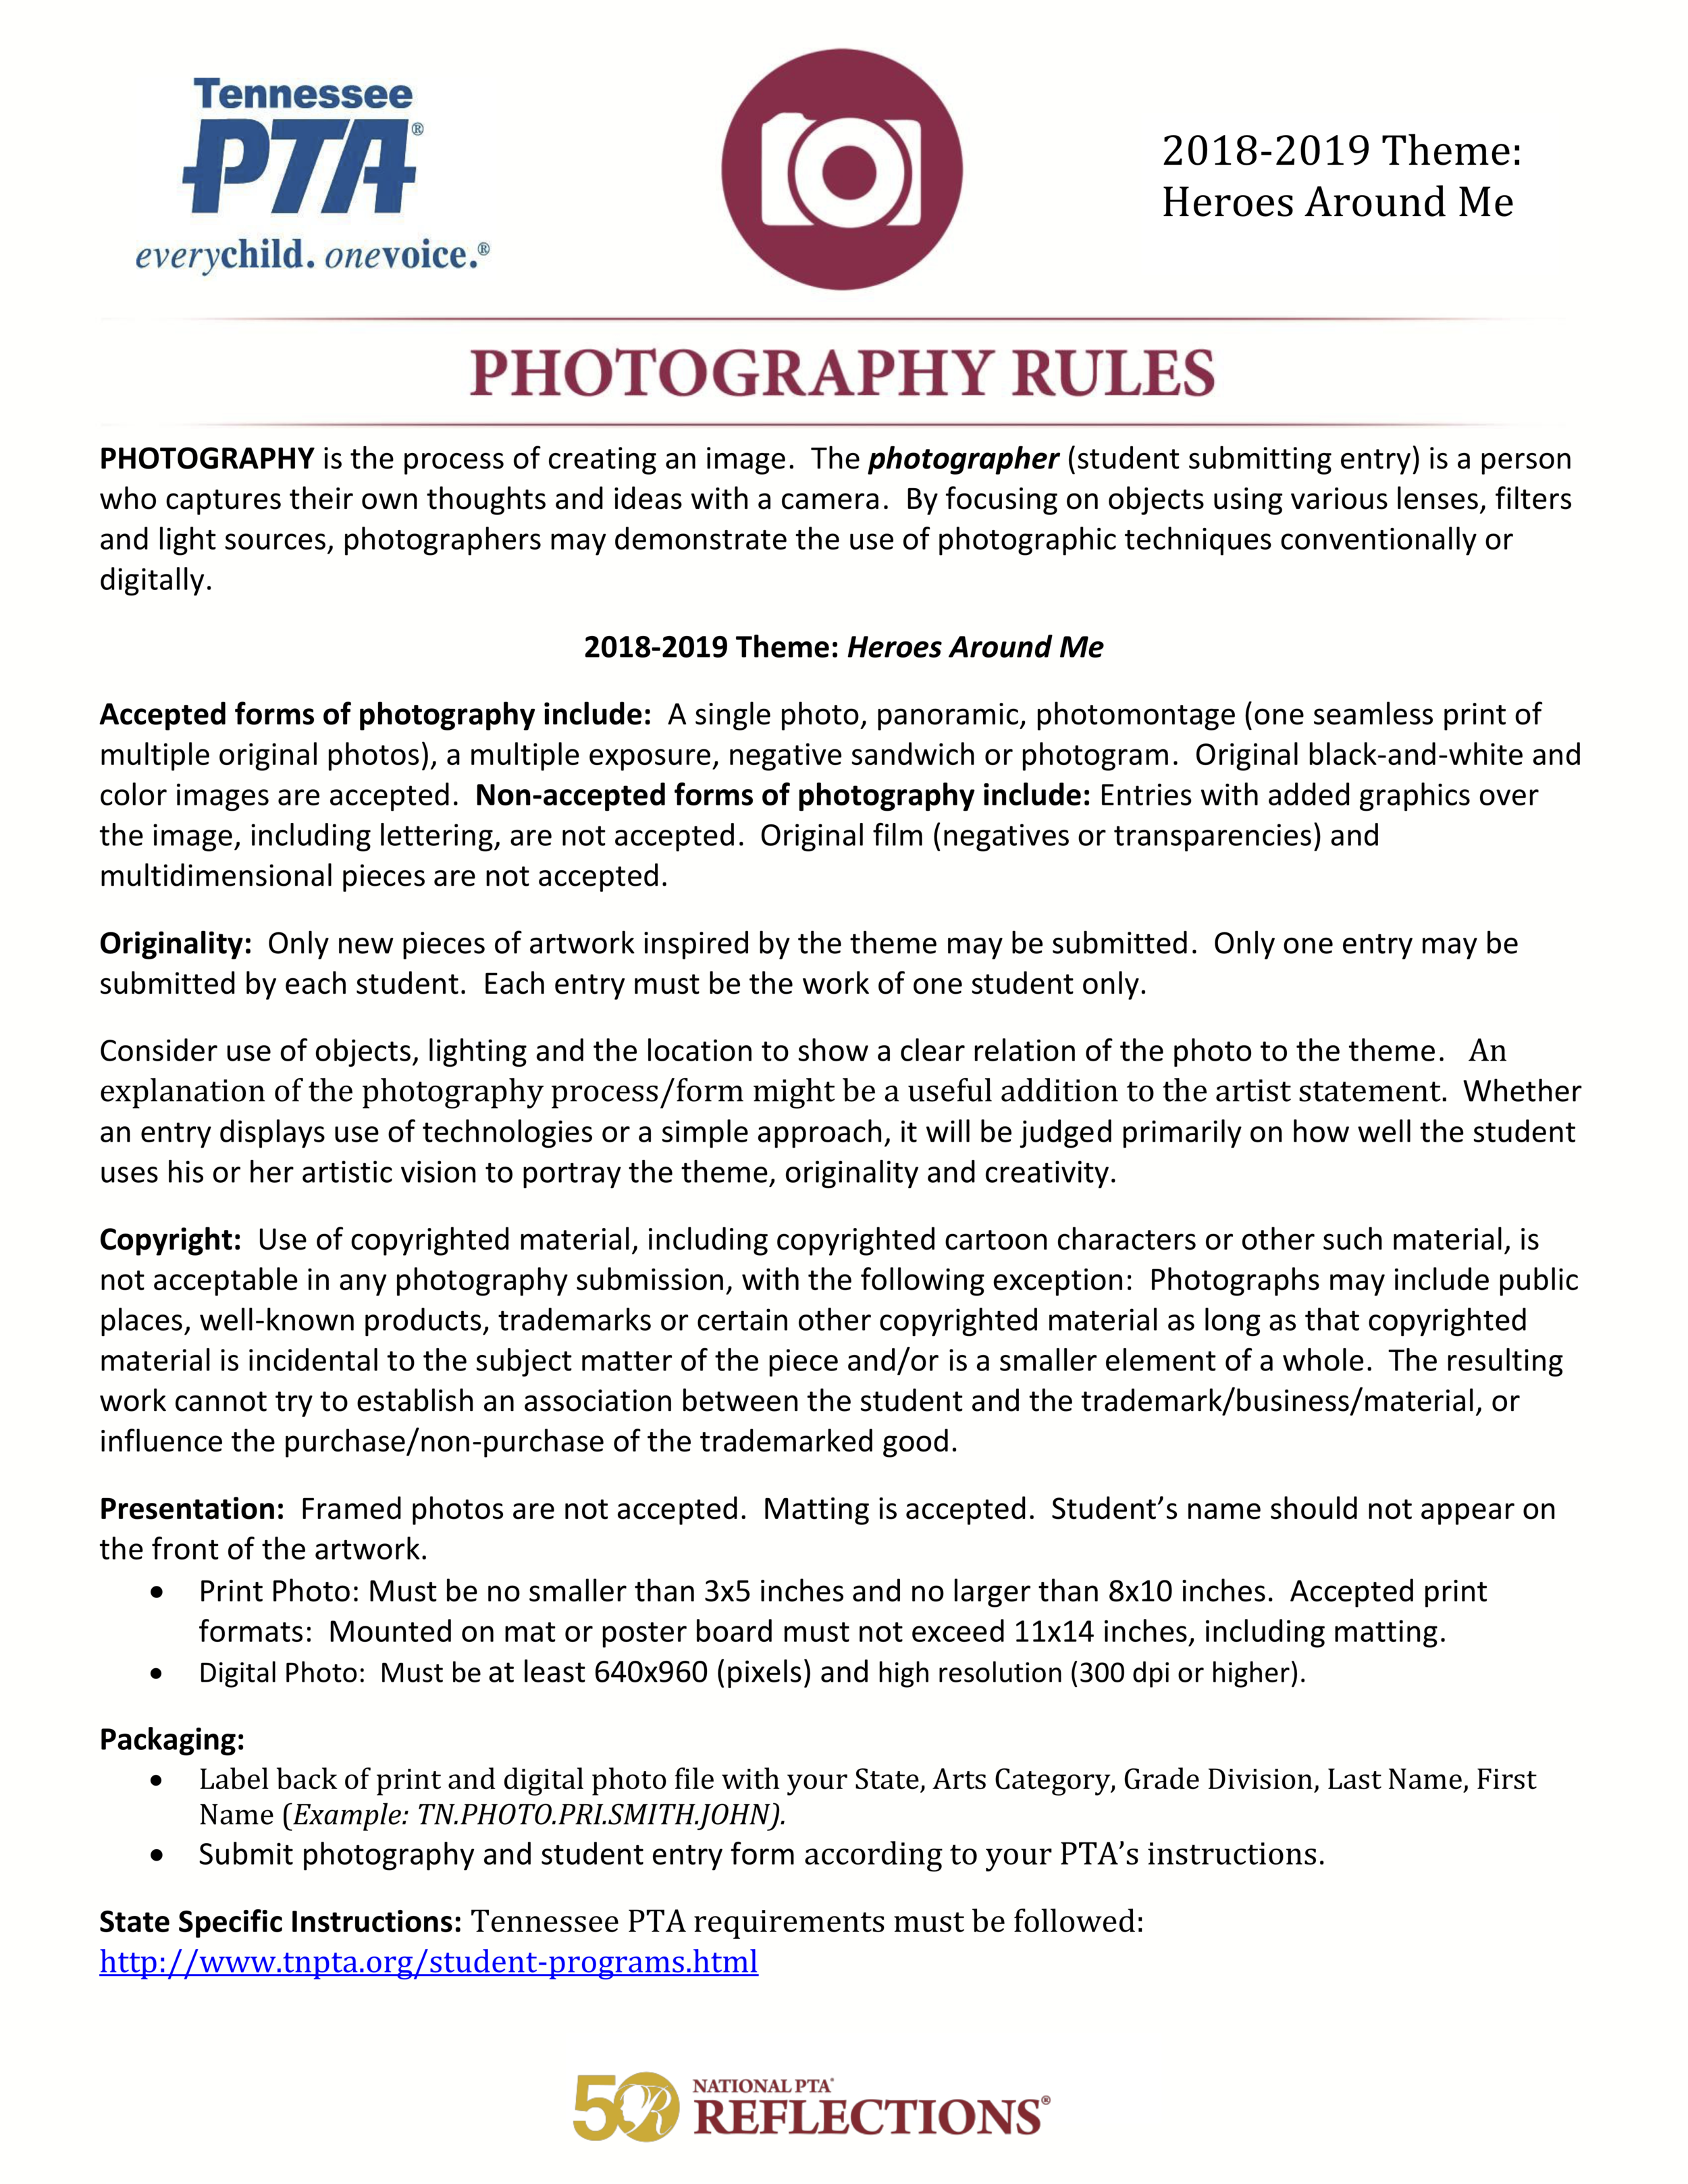 18-19 Reflections Photography Rules.png